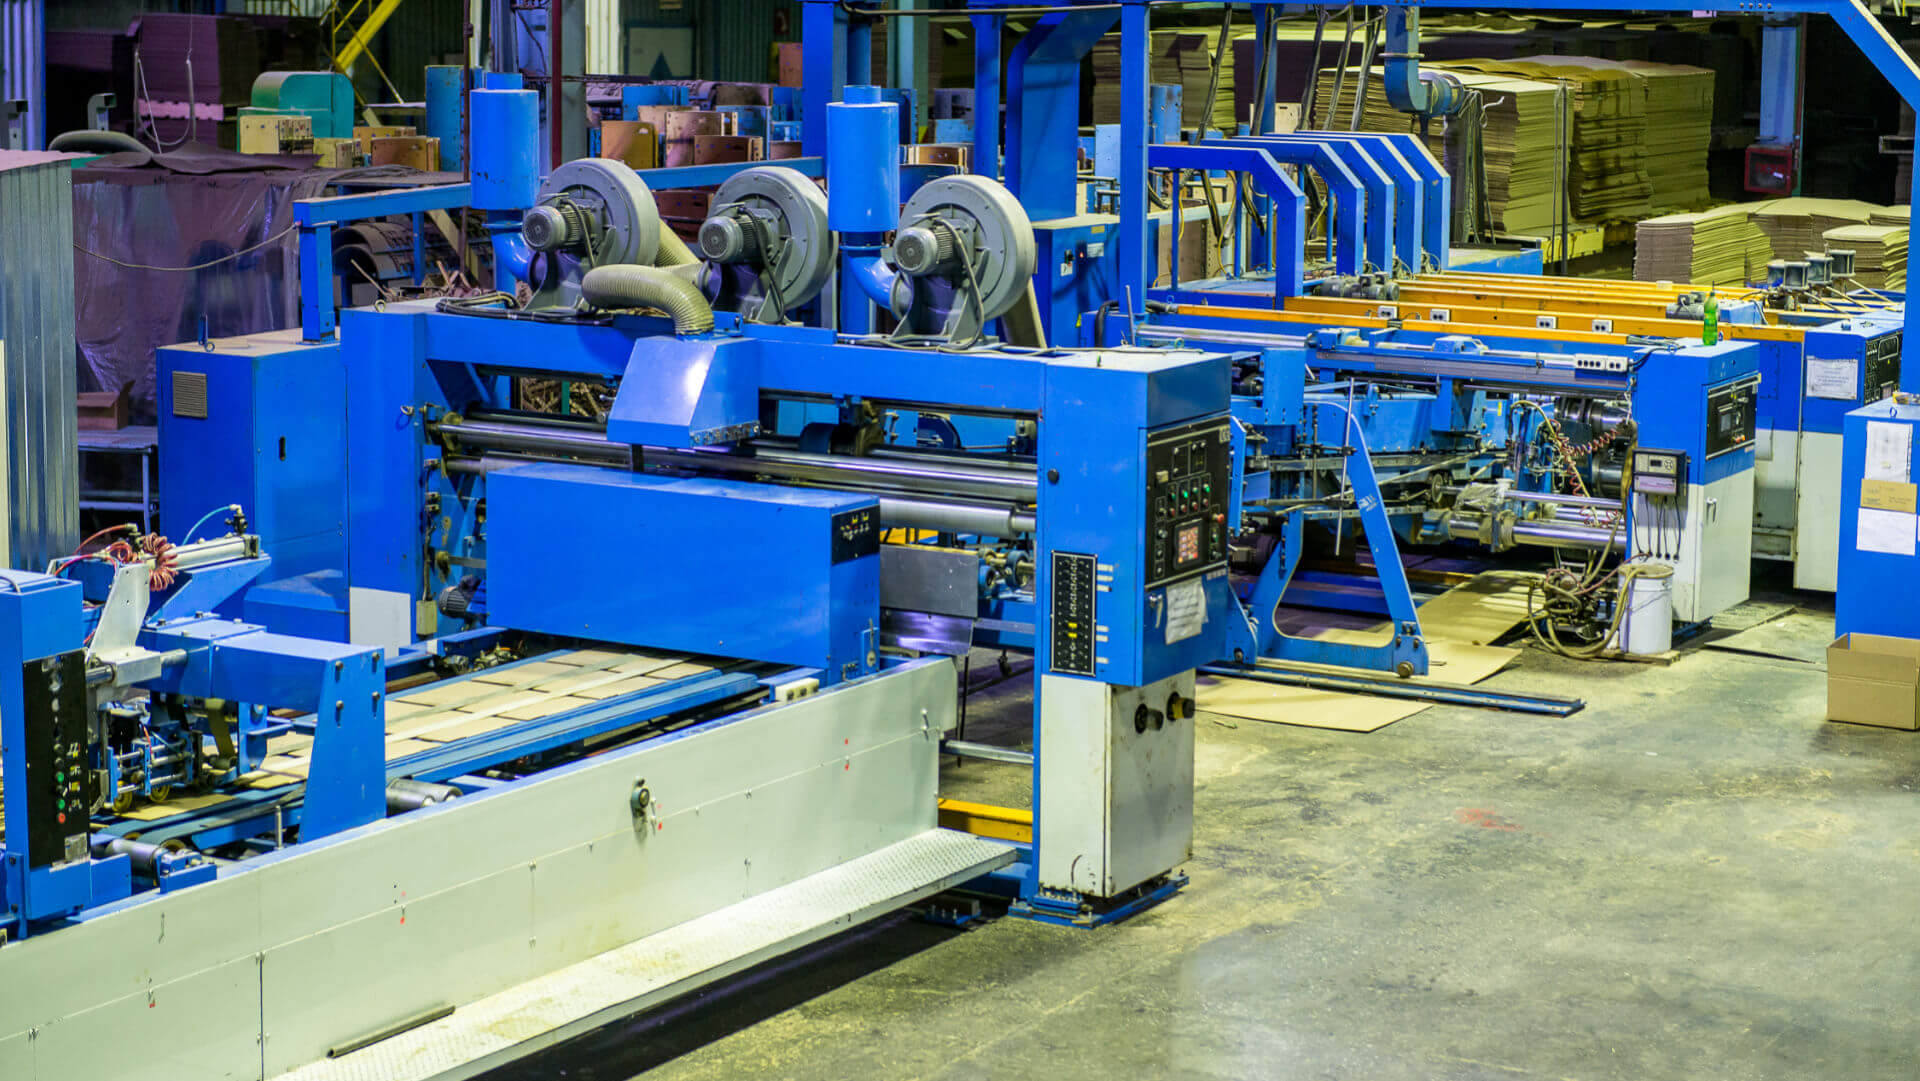 Wide shot of a large automatic production line that is using Transcyko speed reducers